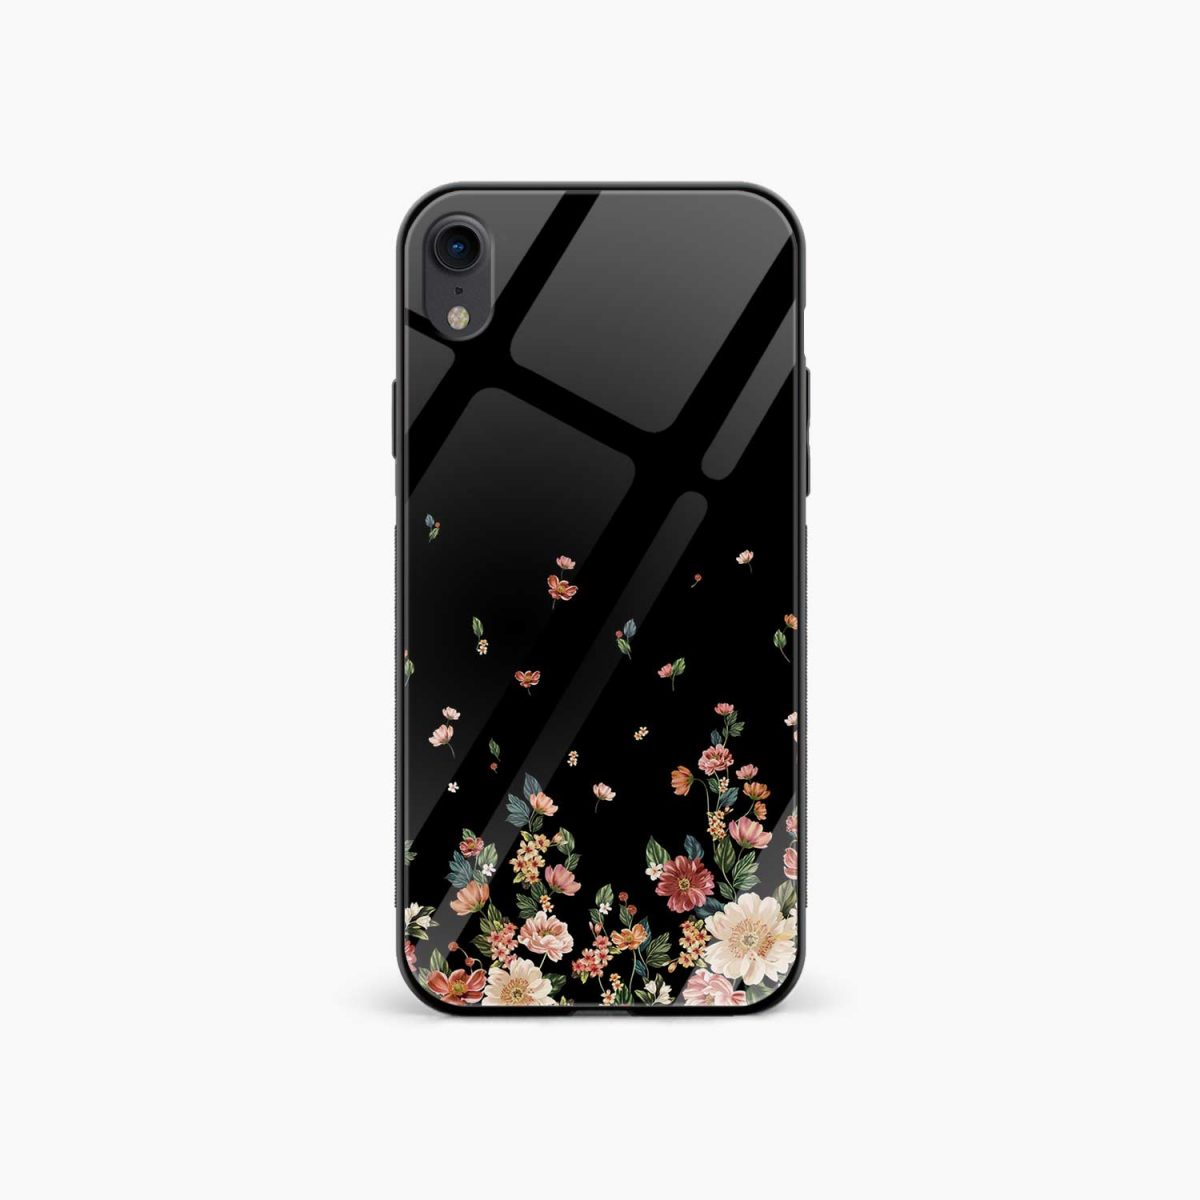 graceful floral black colored apple iphone xr back cover front view